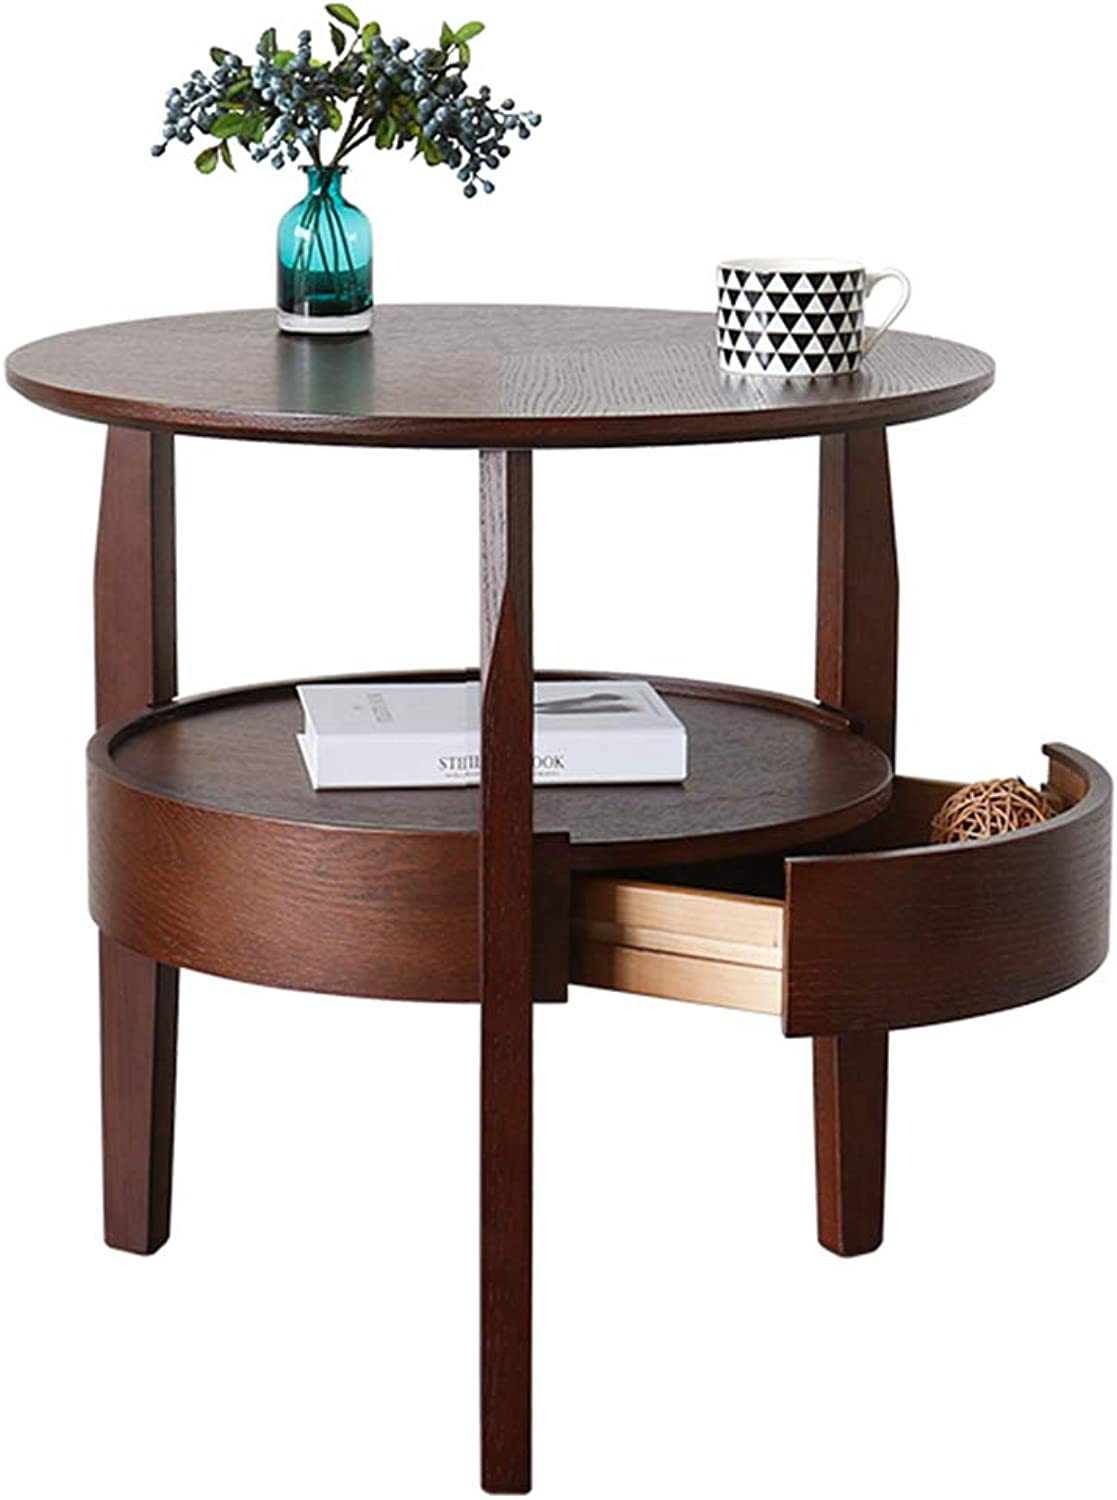 Coffee Tables Coffee Table Solid Wood Coffee Table Small Apartment Coffee Table Round Coffee Table Modern Sofa Side Cabinet Bed Small Table Double Storage, Oak Production